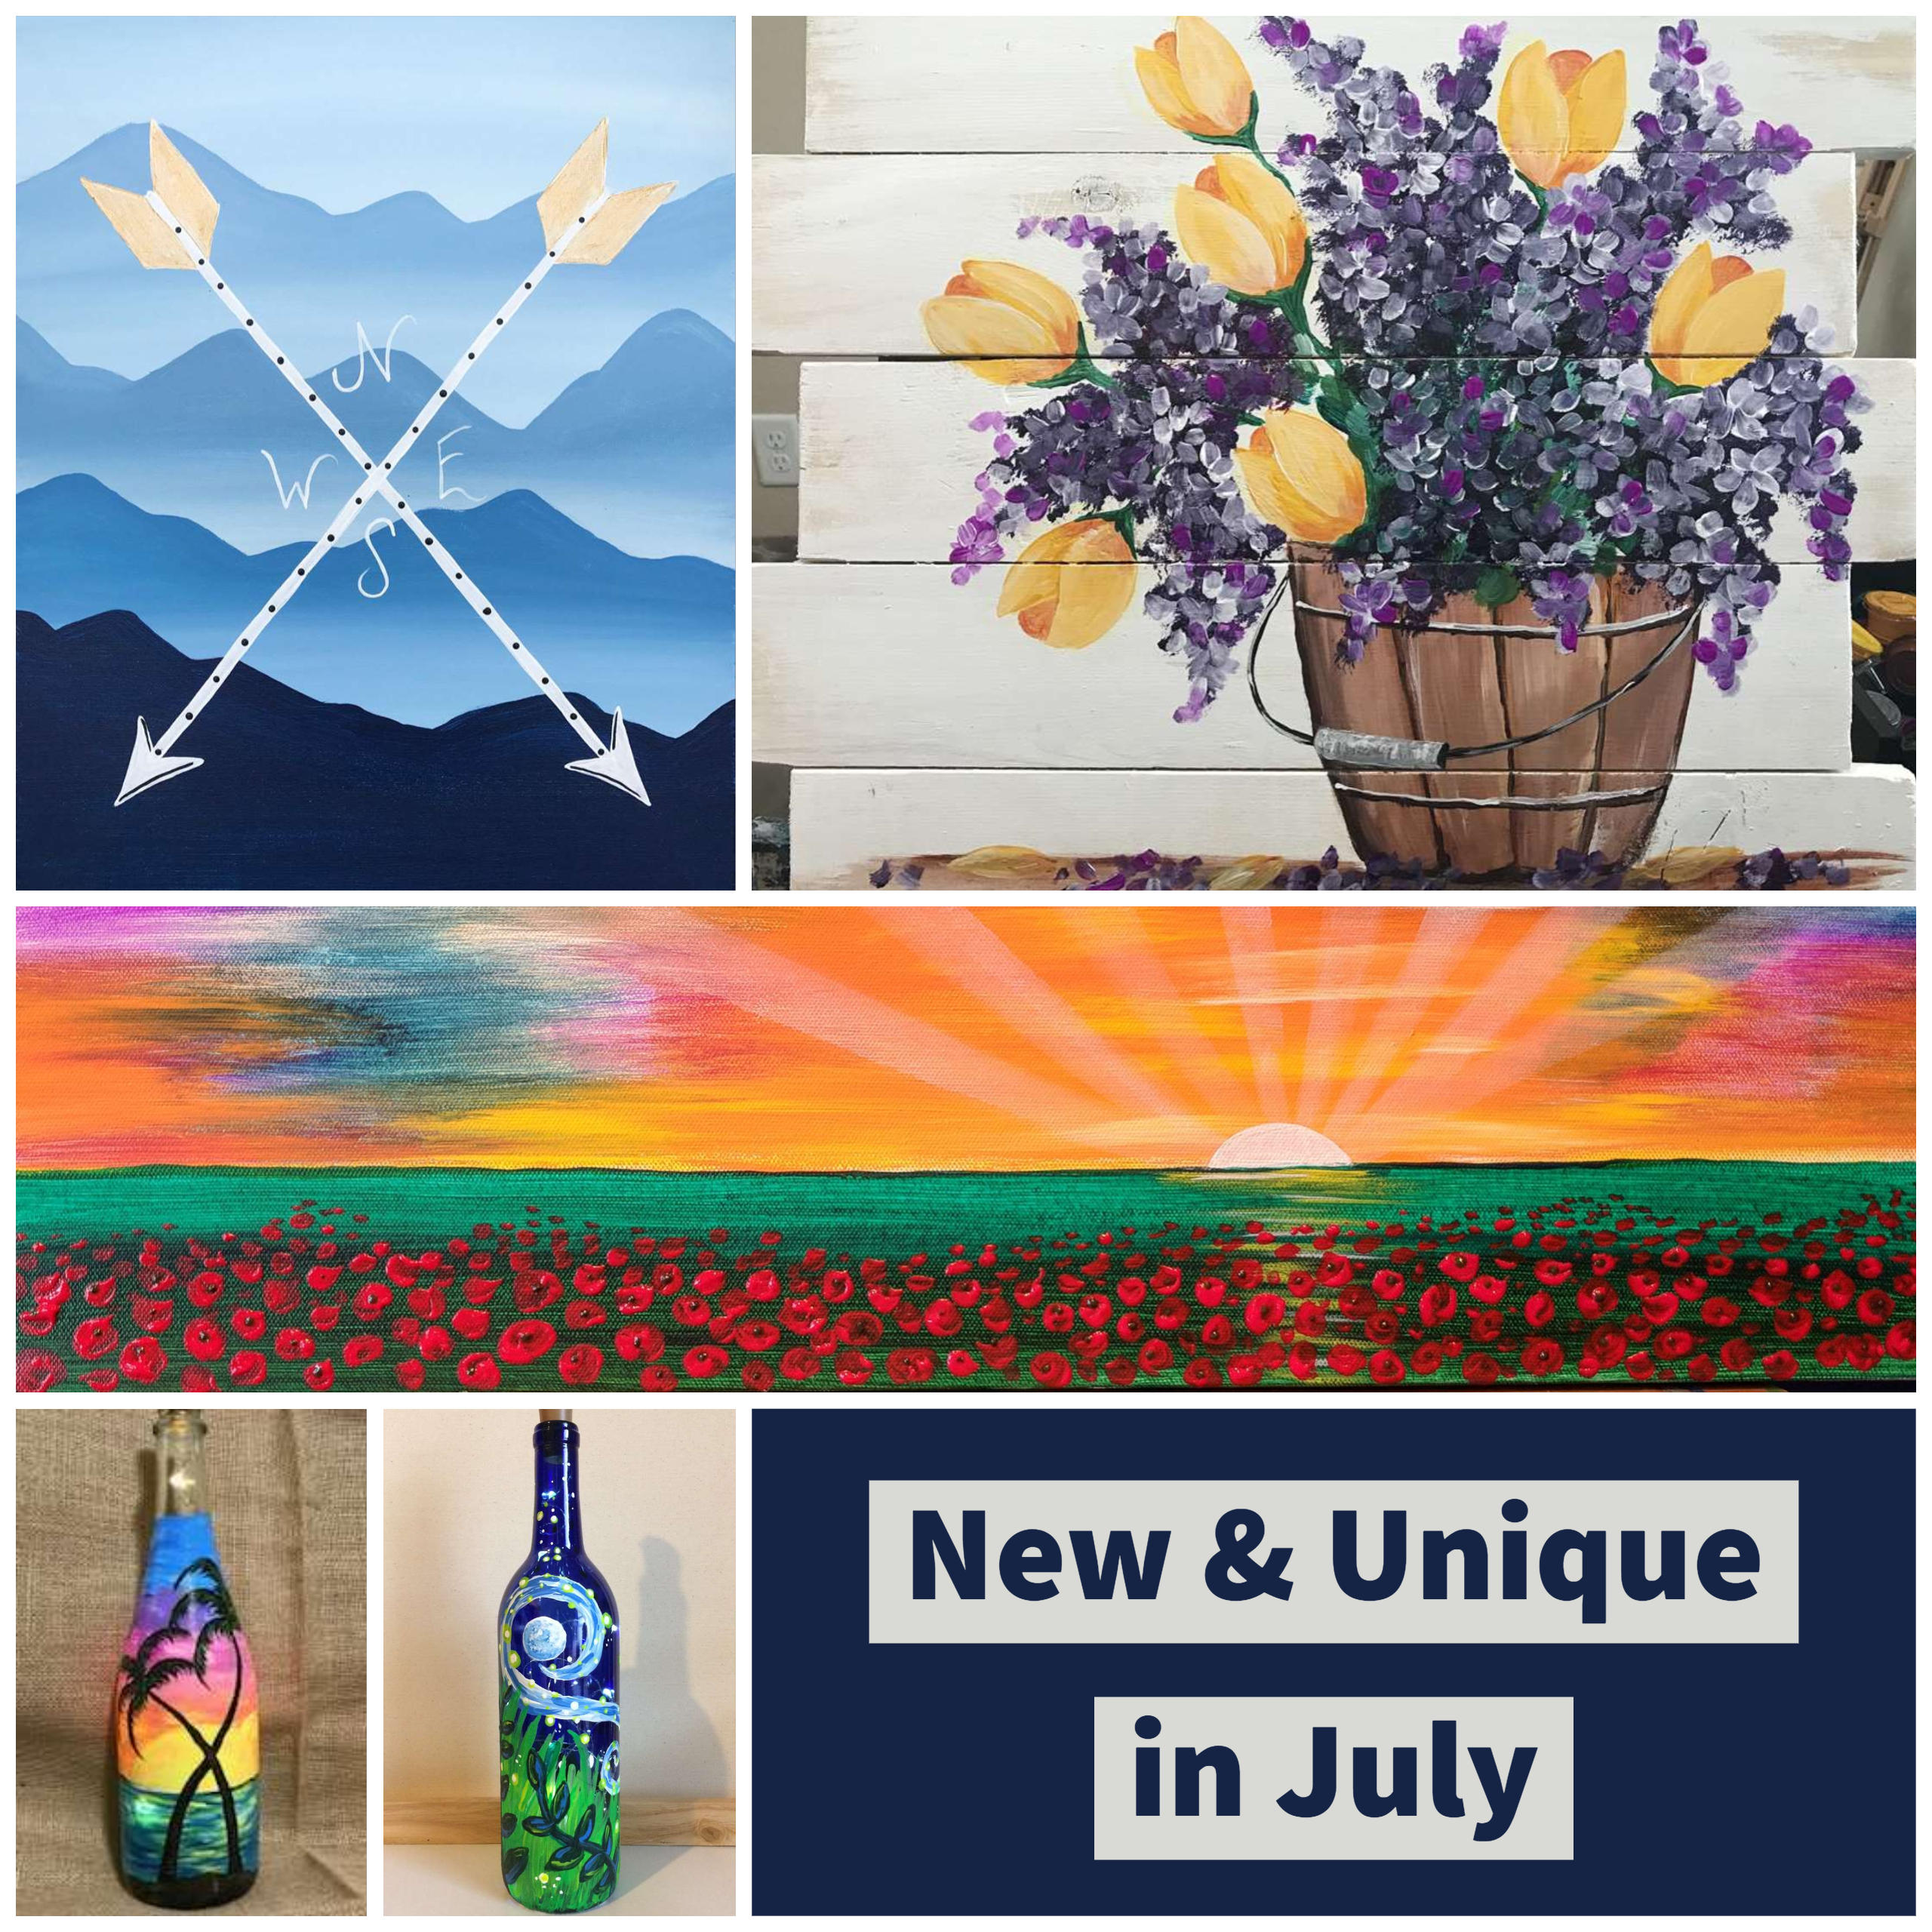 New & Unique in July!